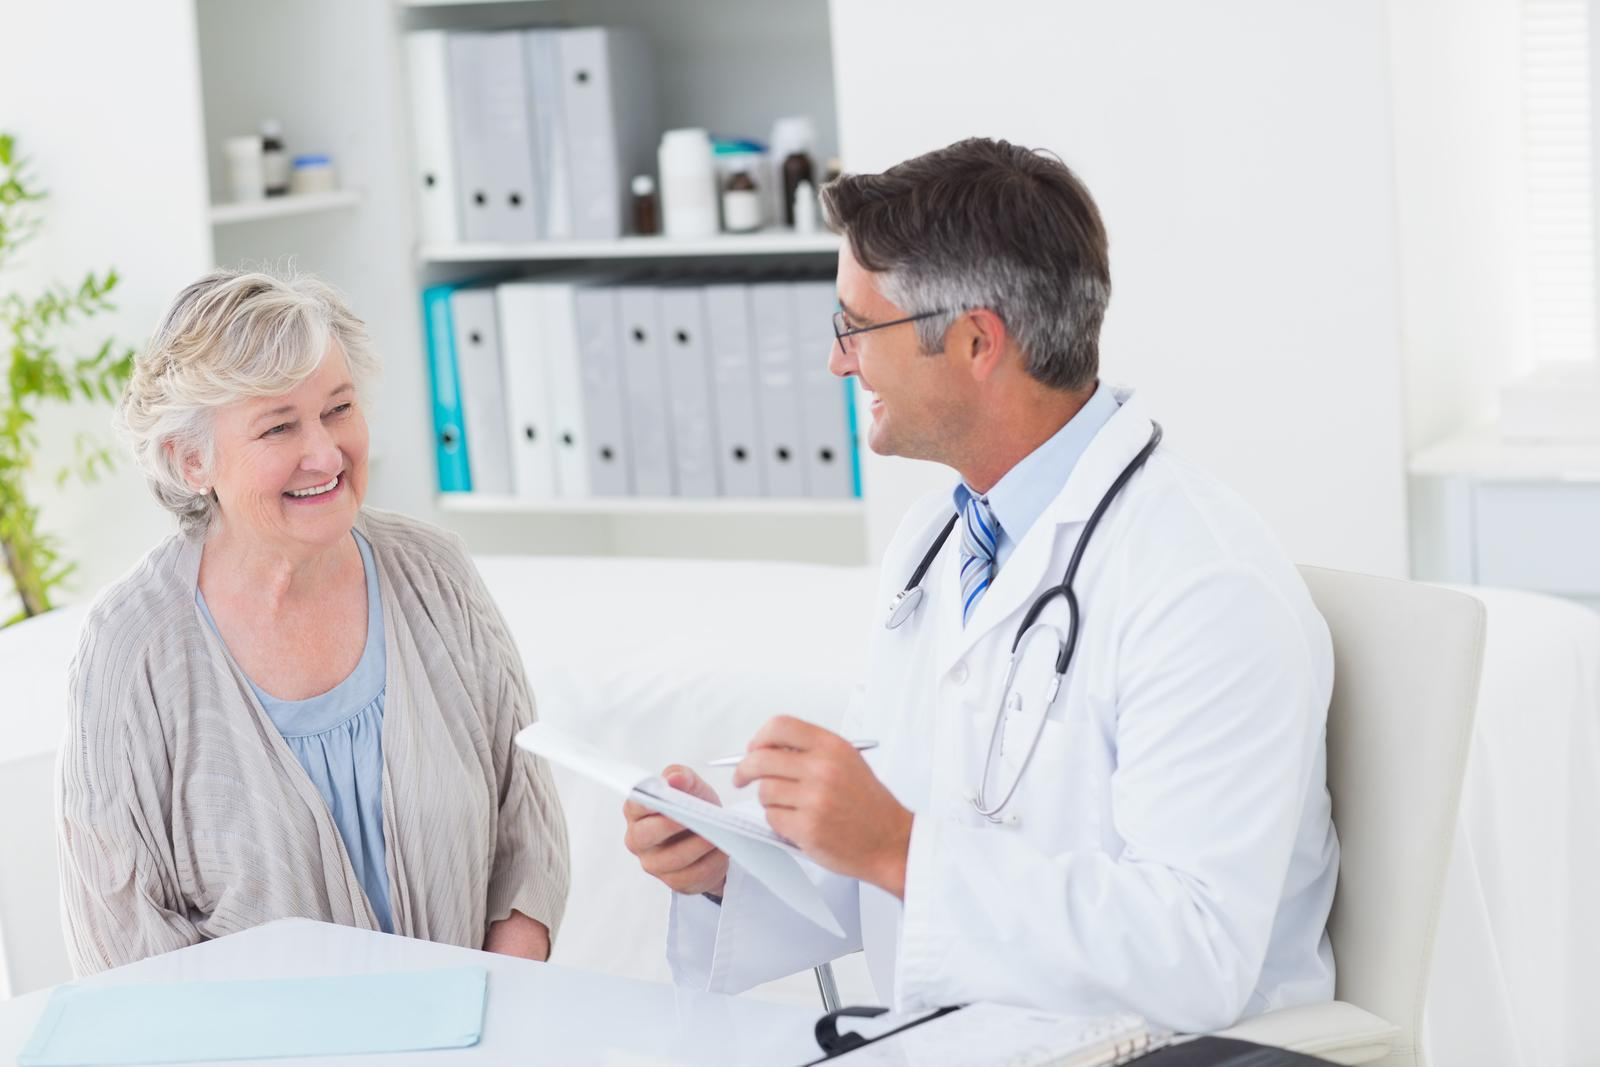 A cannabis physician consults with a smiling elderly woman patient in a medical marijuana clinic.